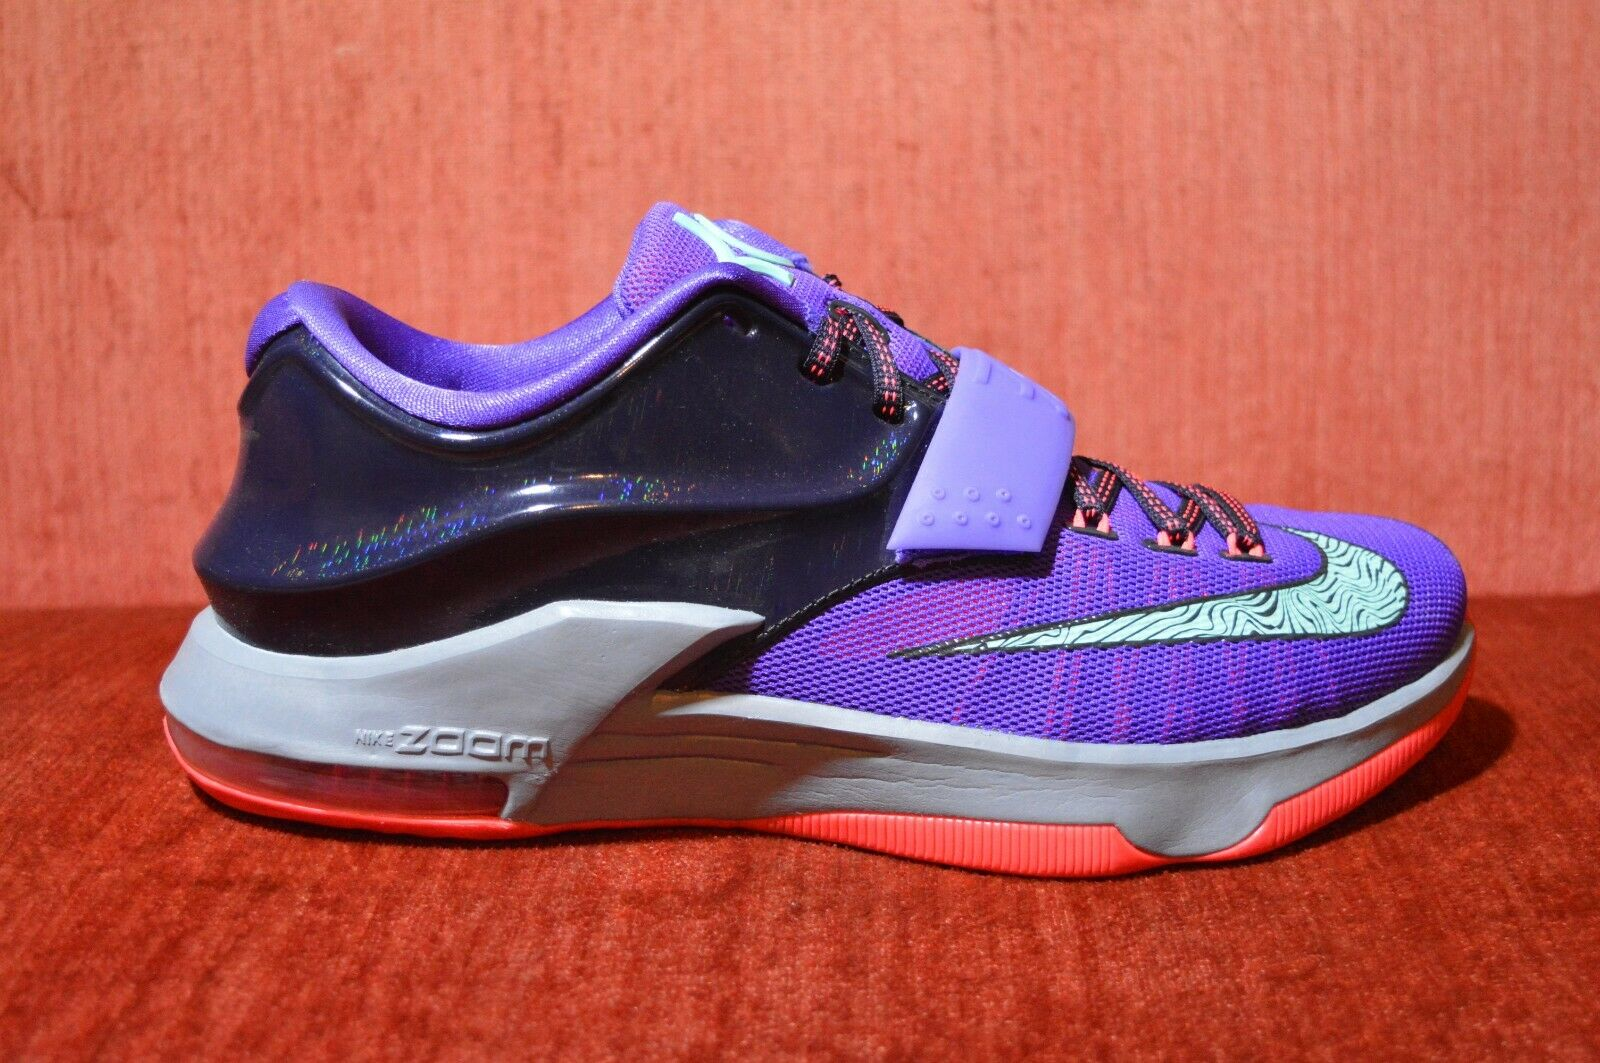 WORN ONCE Nike KD VII 7 Cave Purple Size 9 653996-535 Purple Black Red